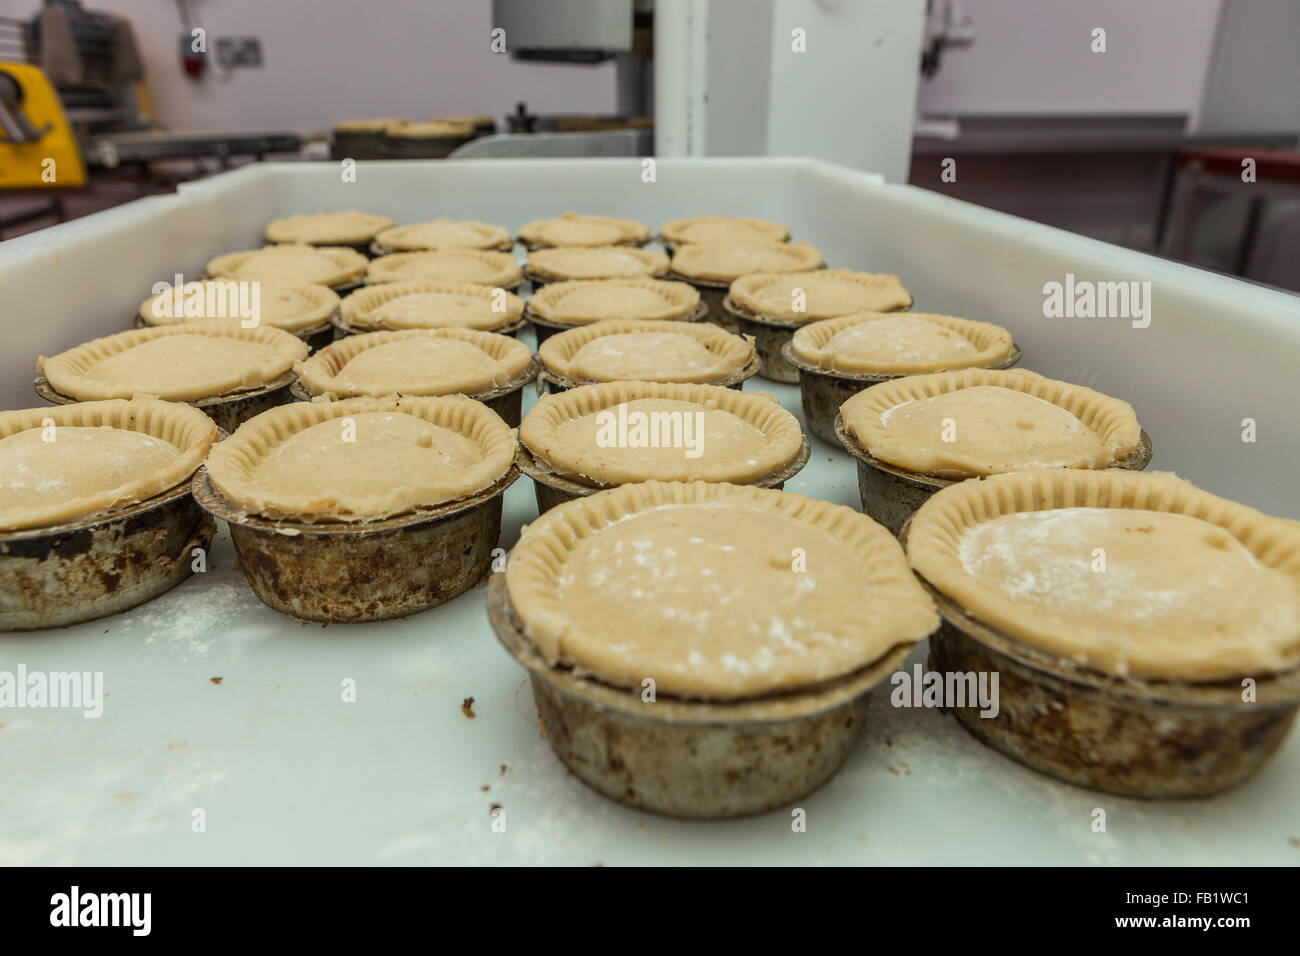 Freshly made pies ready to be cooked on a tray. - Stock Image